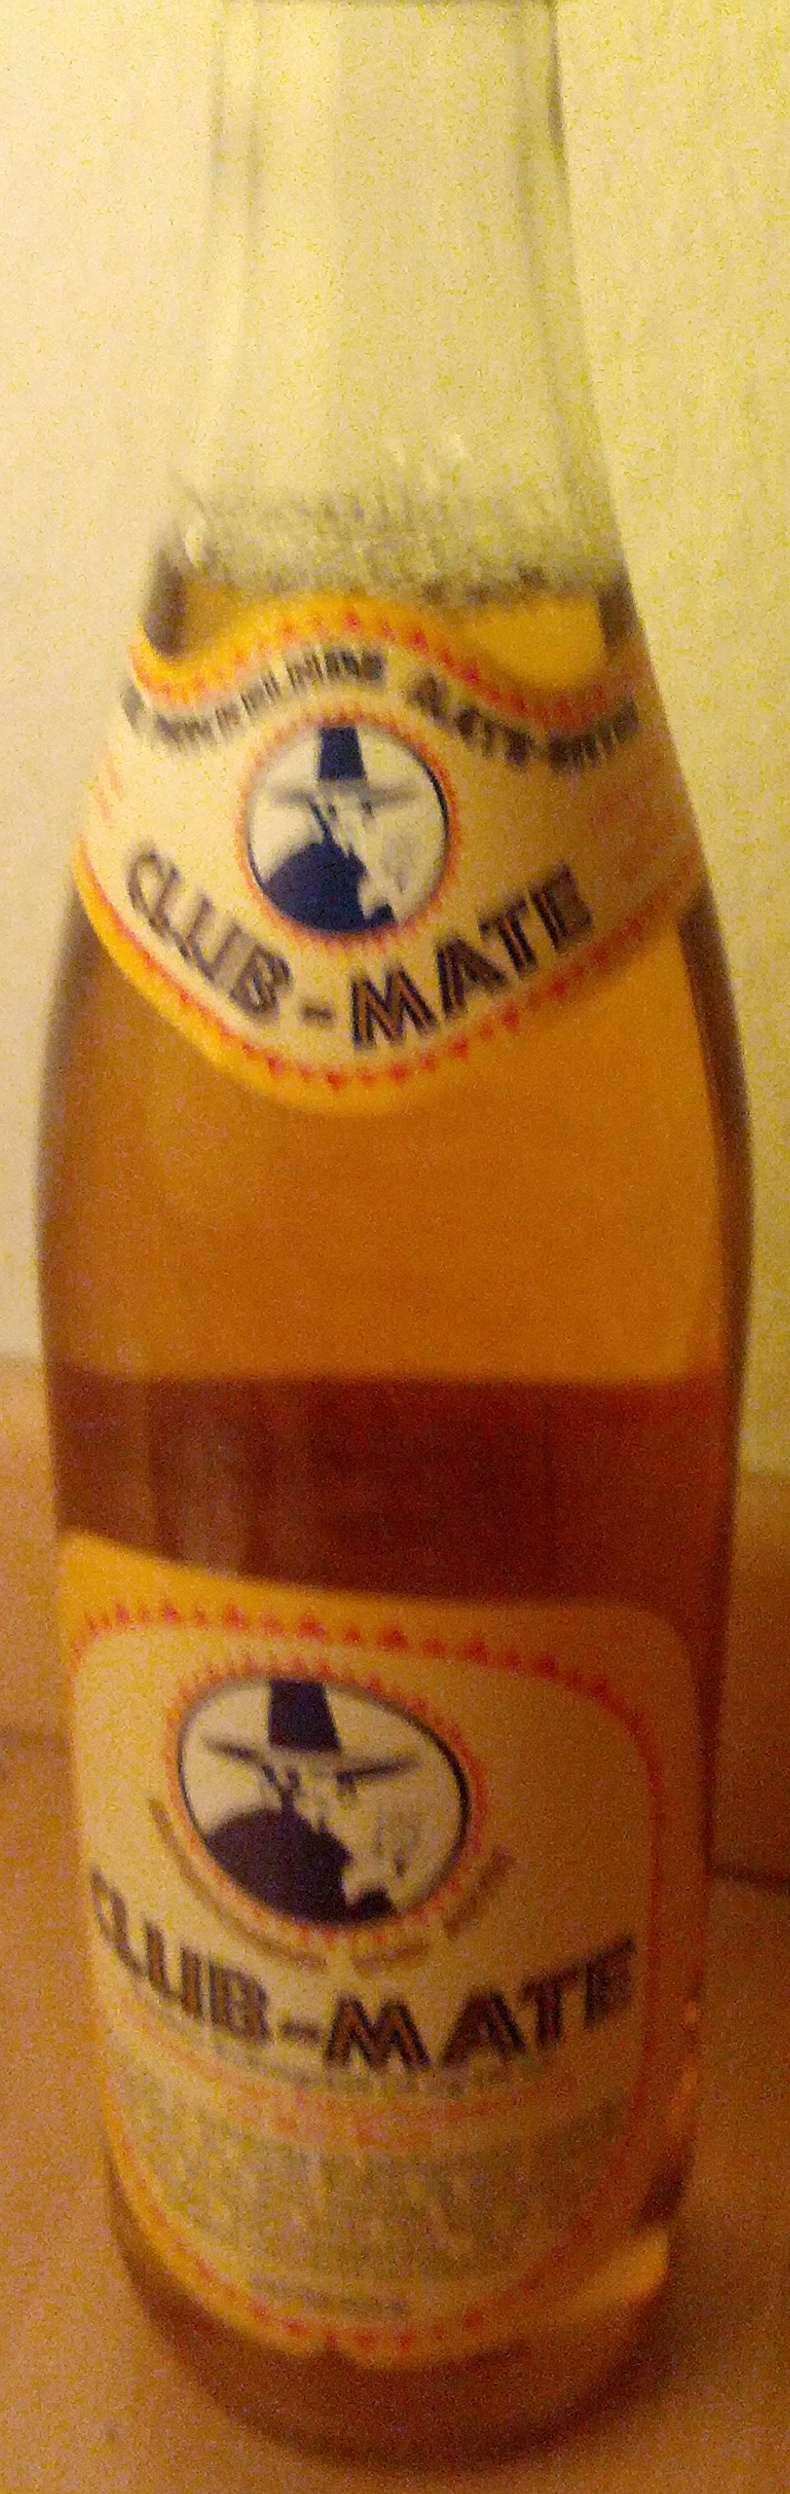 CLUB-MATE - Product